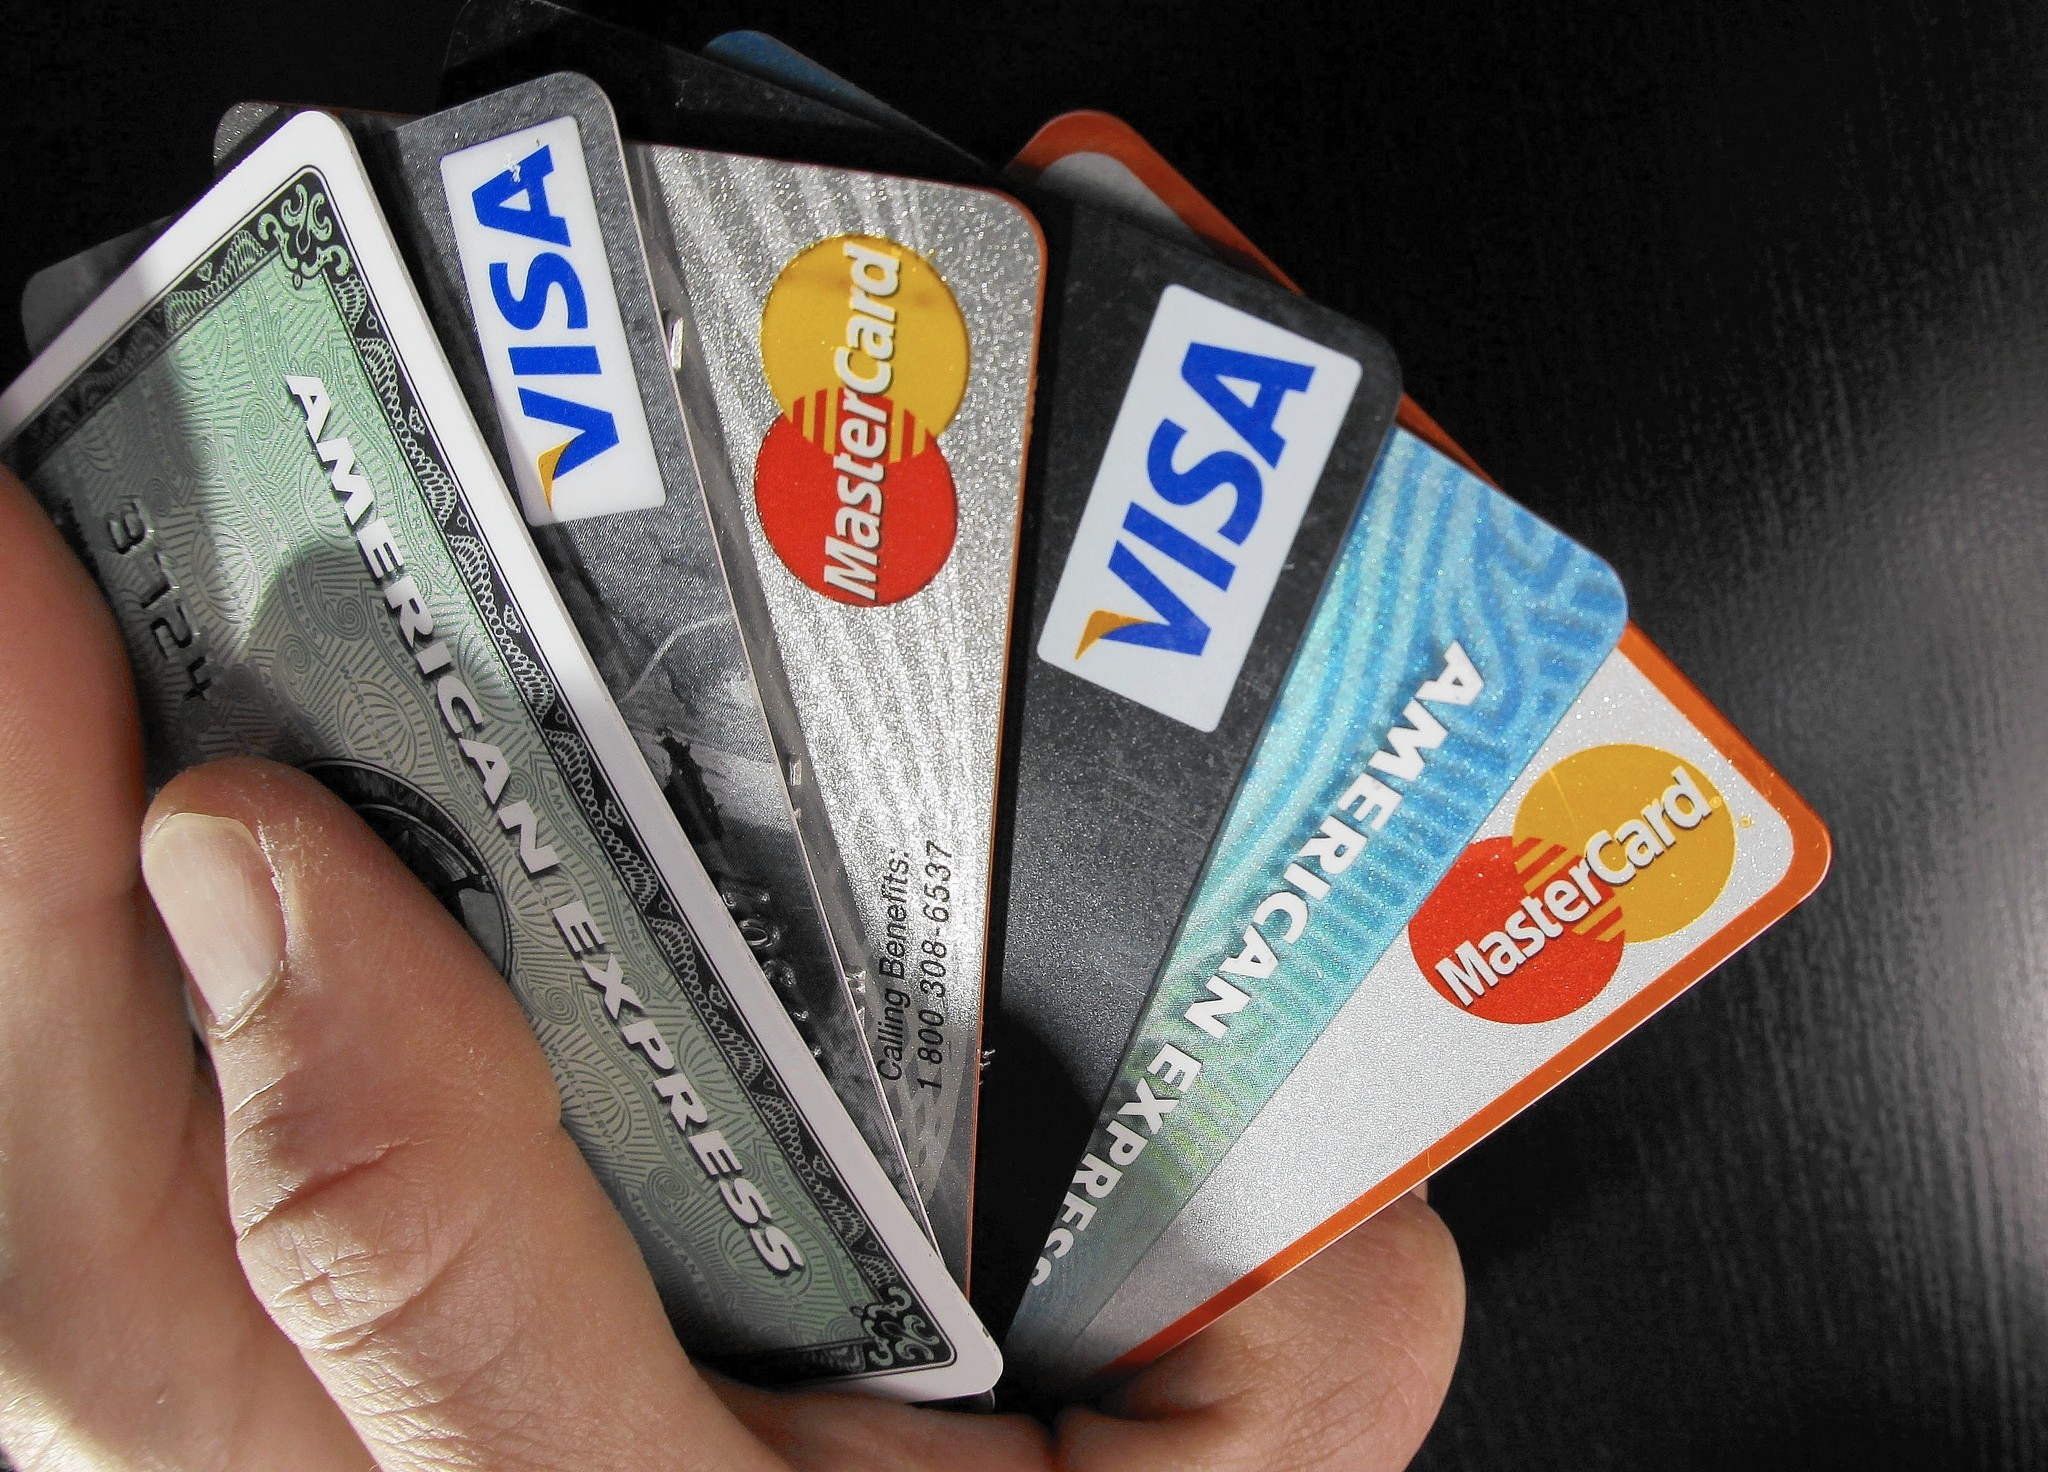 TransUnion files for IPO to raise as much as $100 million